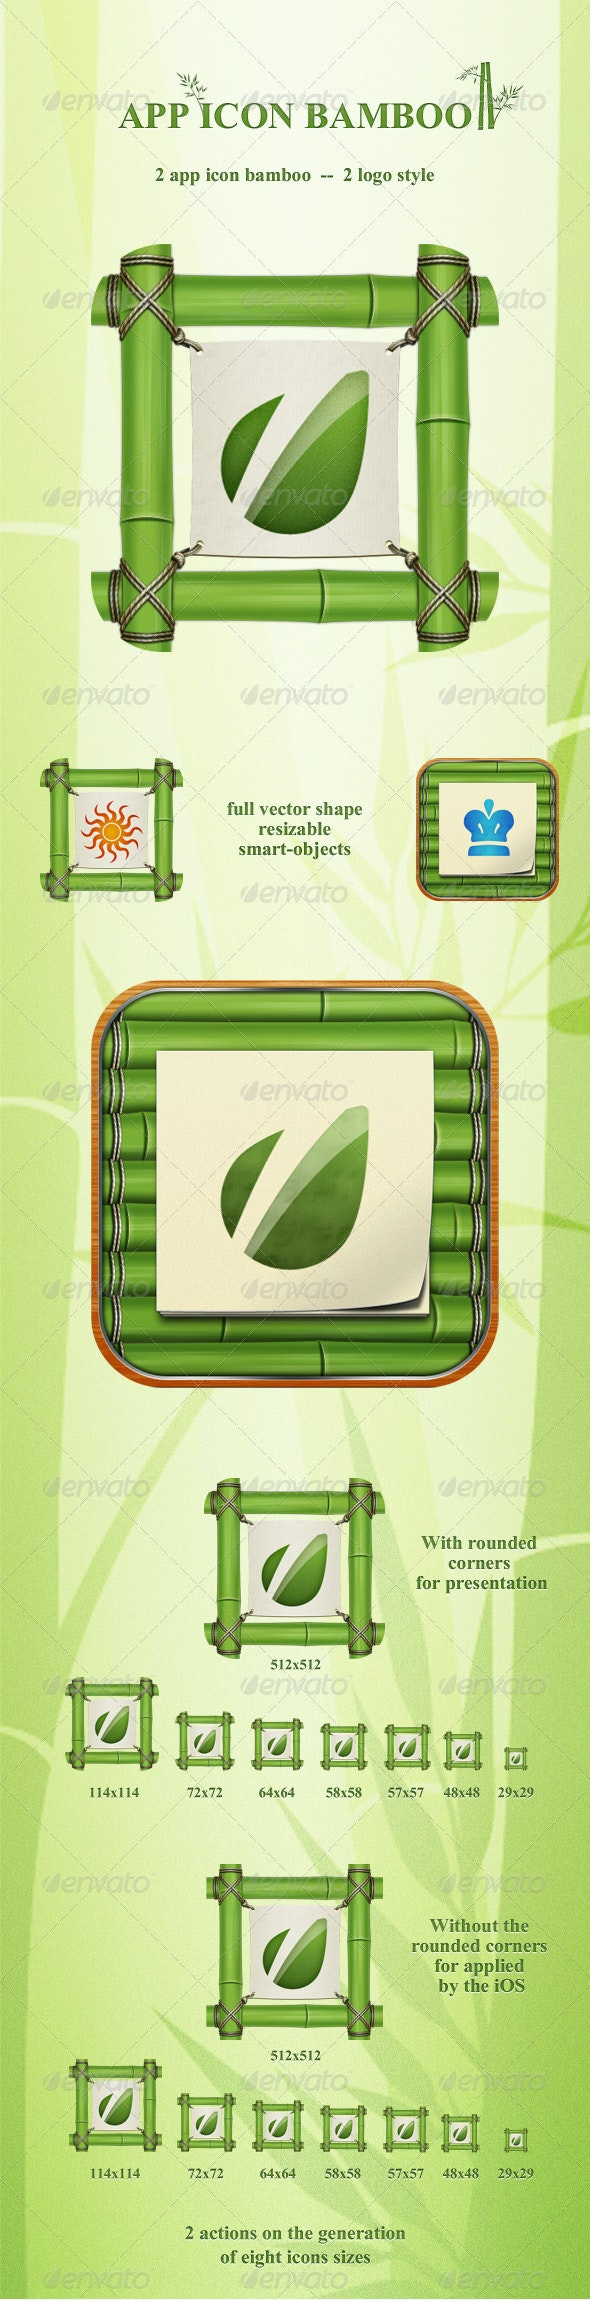 App Icon Bamboo - Software Icons